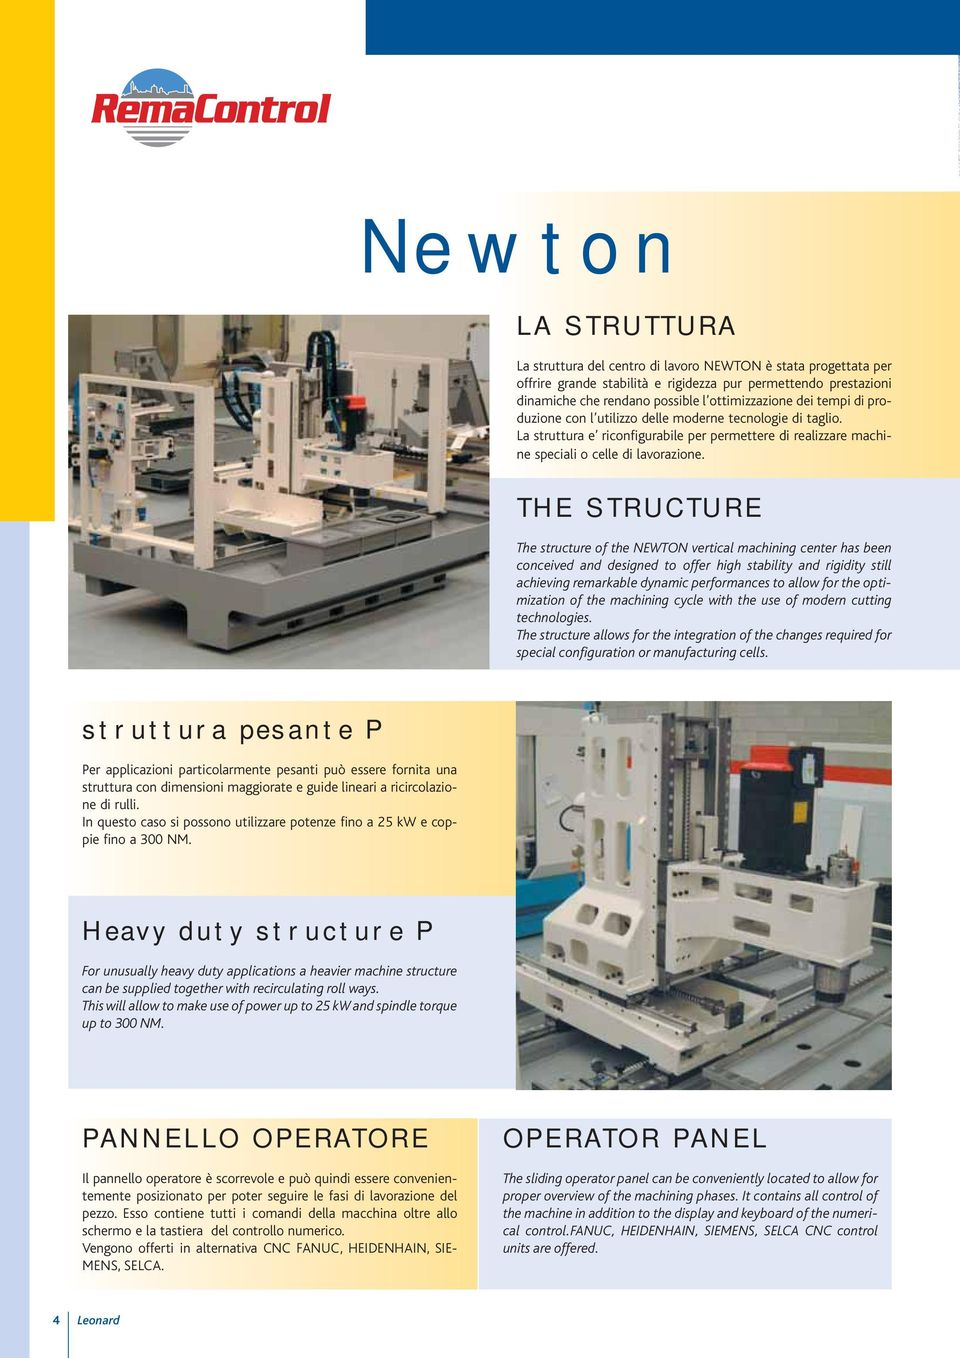 THE STRUCTURE The structure of the NEWTON vertical machining center has been conceived and designed to offer high stability and rigidity still achieving remarkable dynamic performances to allow for